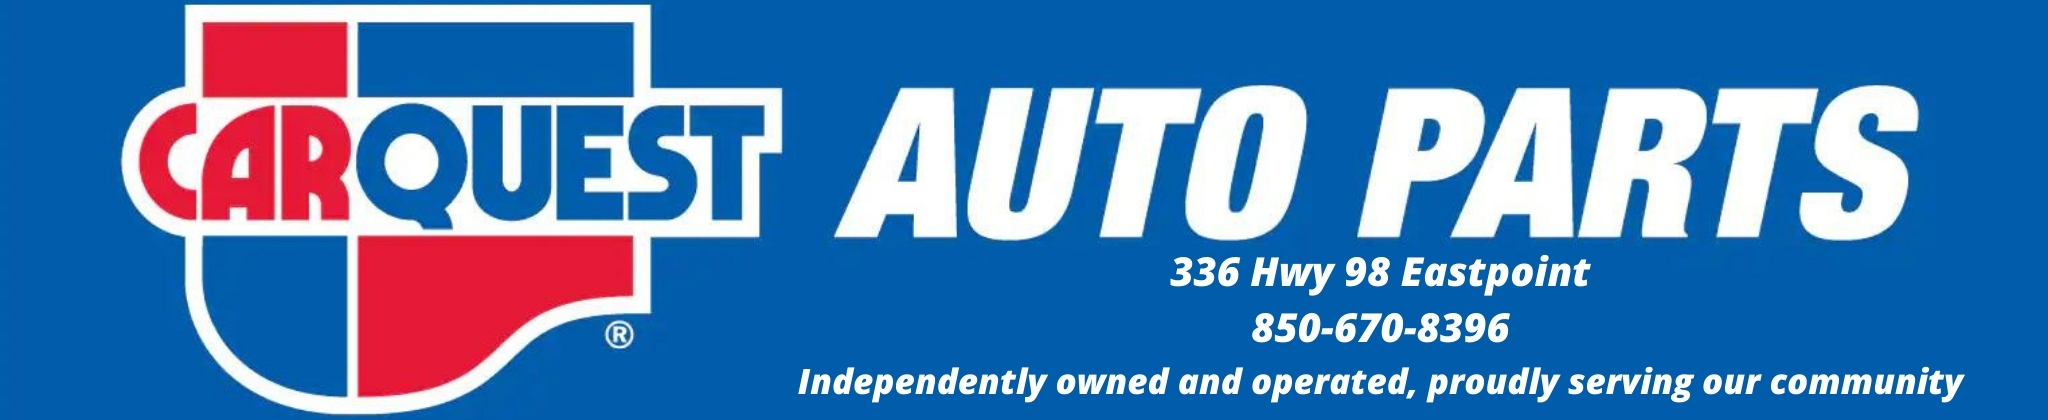 Flynn Auto Parts Eastpoint - CARQUEST